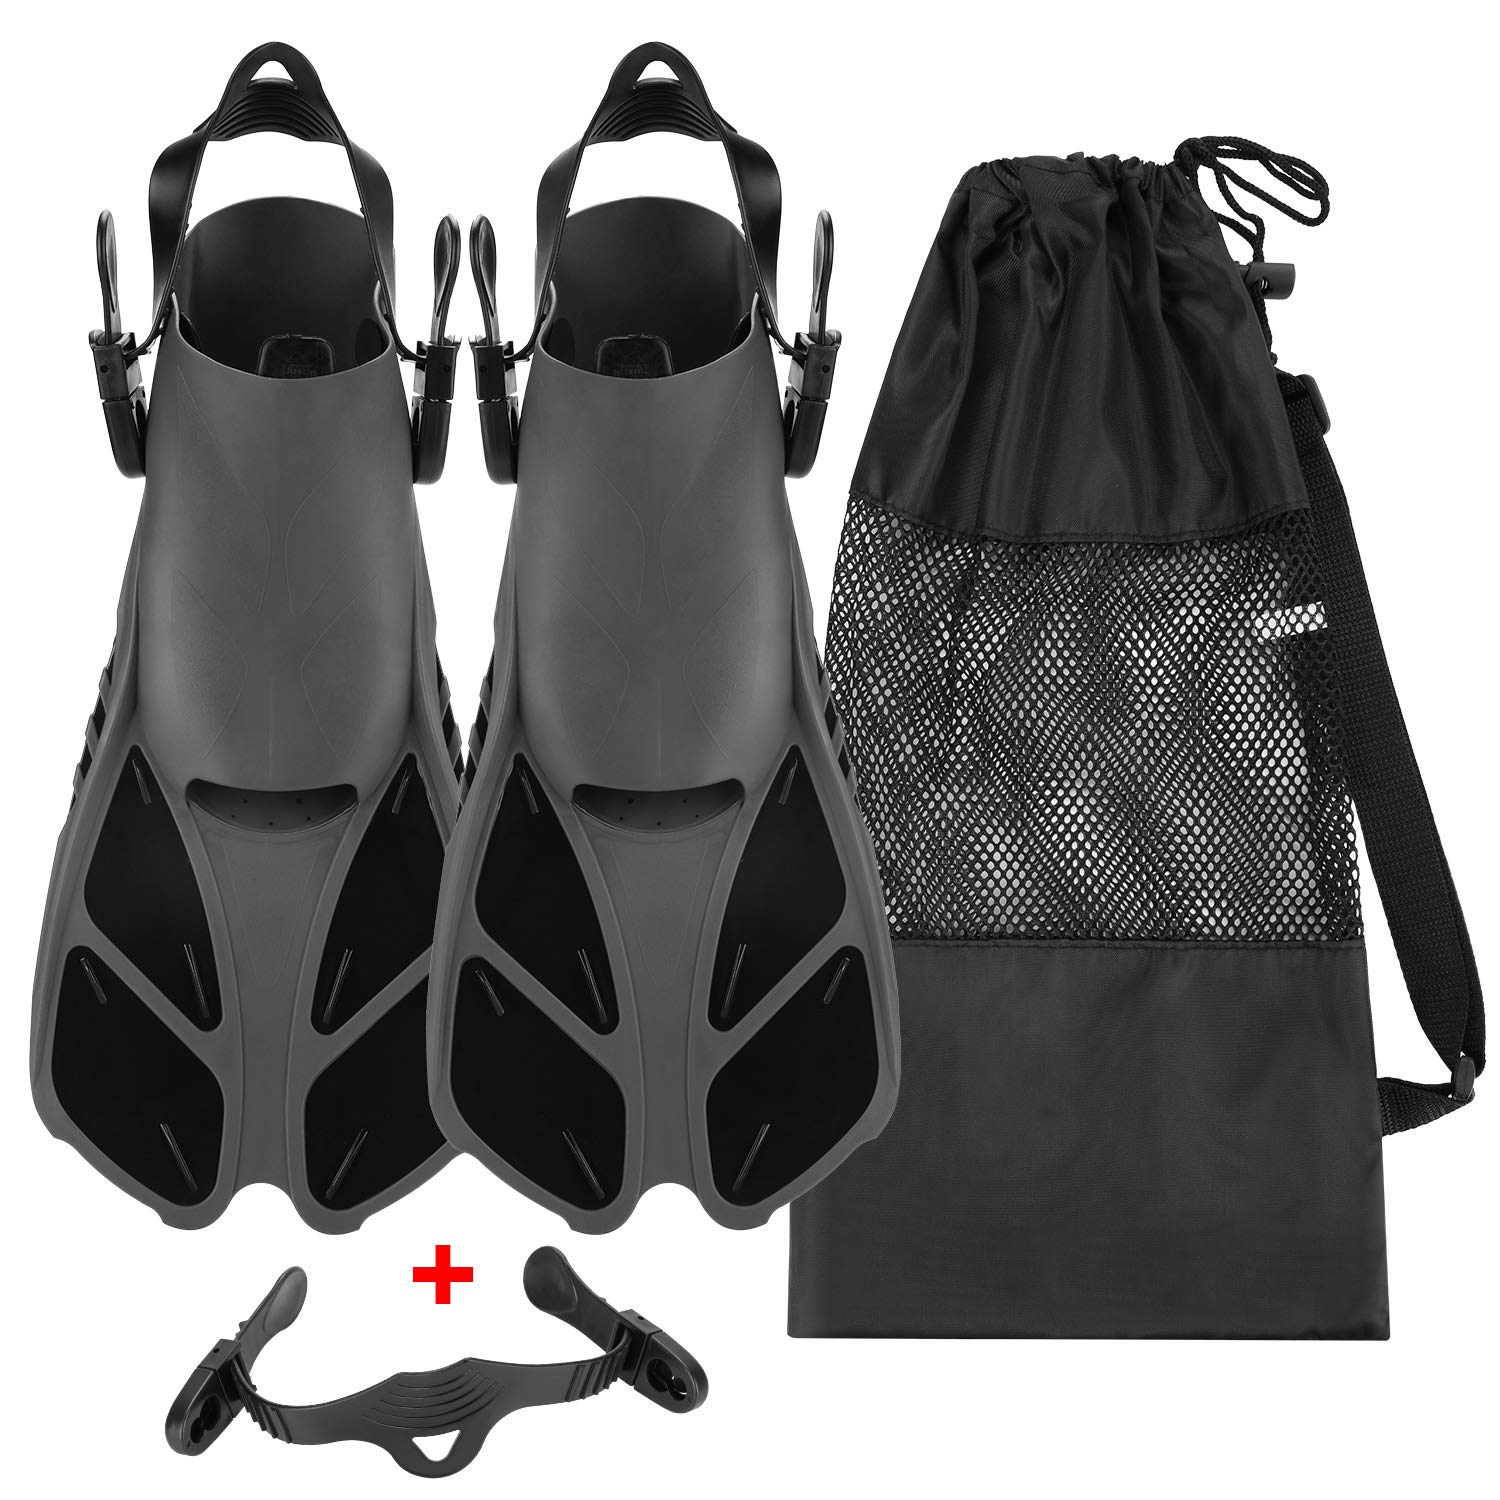 Oumers Snorkel Fins, Travel Size Adjustable Strap Diving Flippers with Mesh Bag and Extra Buckle Connector for Men Women Snorkeling Diving Swimming by Oumers